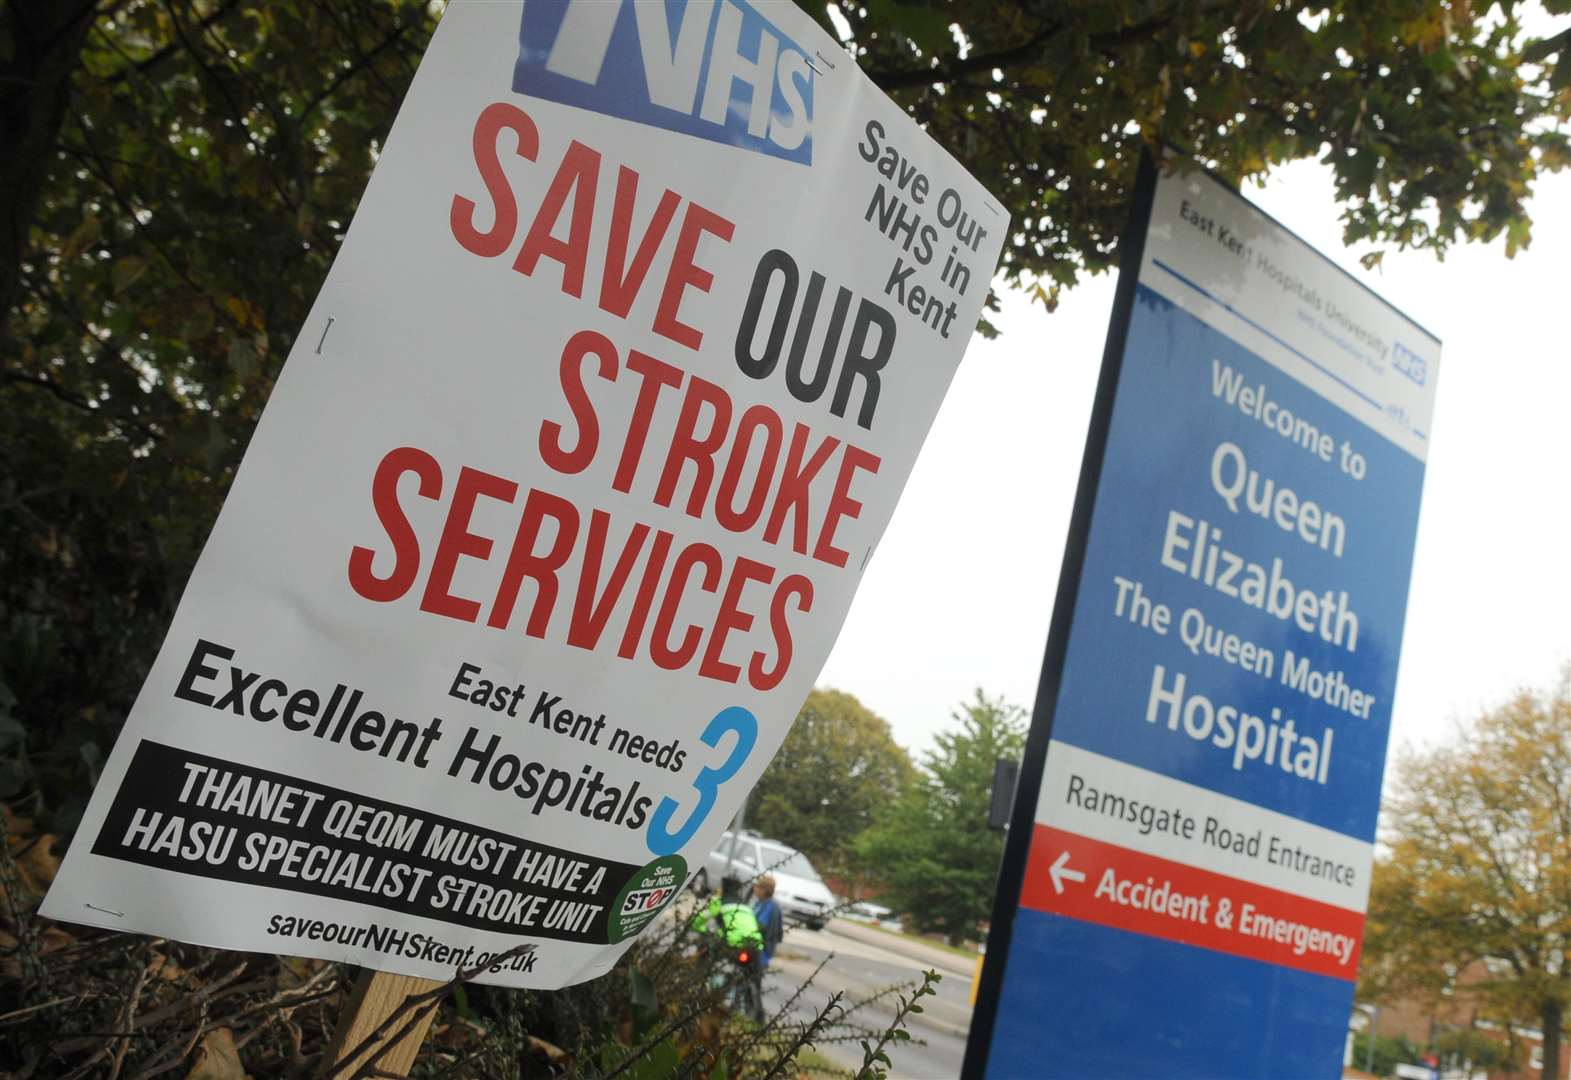 Doctors brand stroke review claims 'irresponsible'